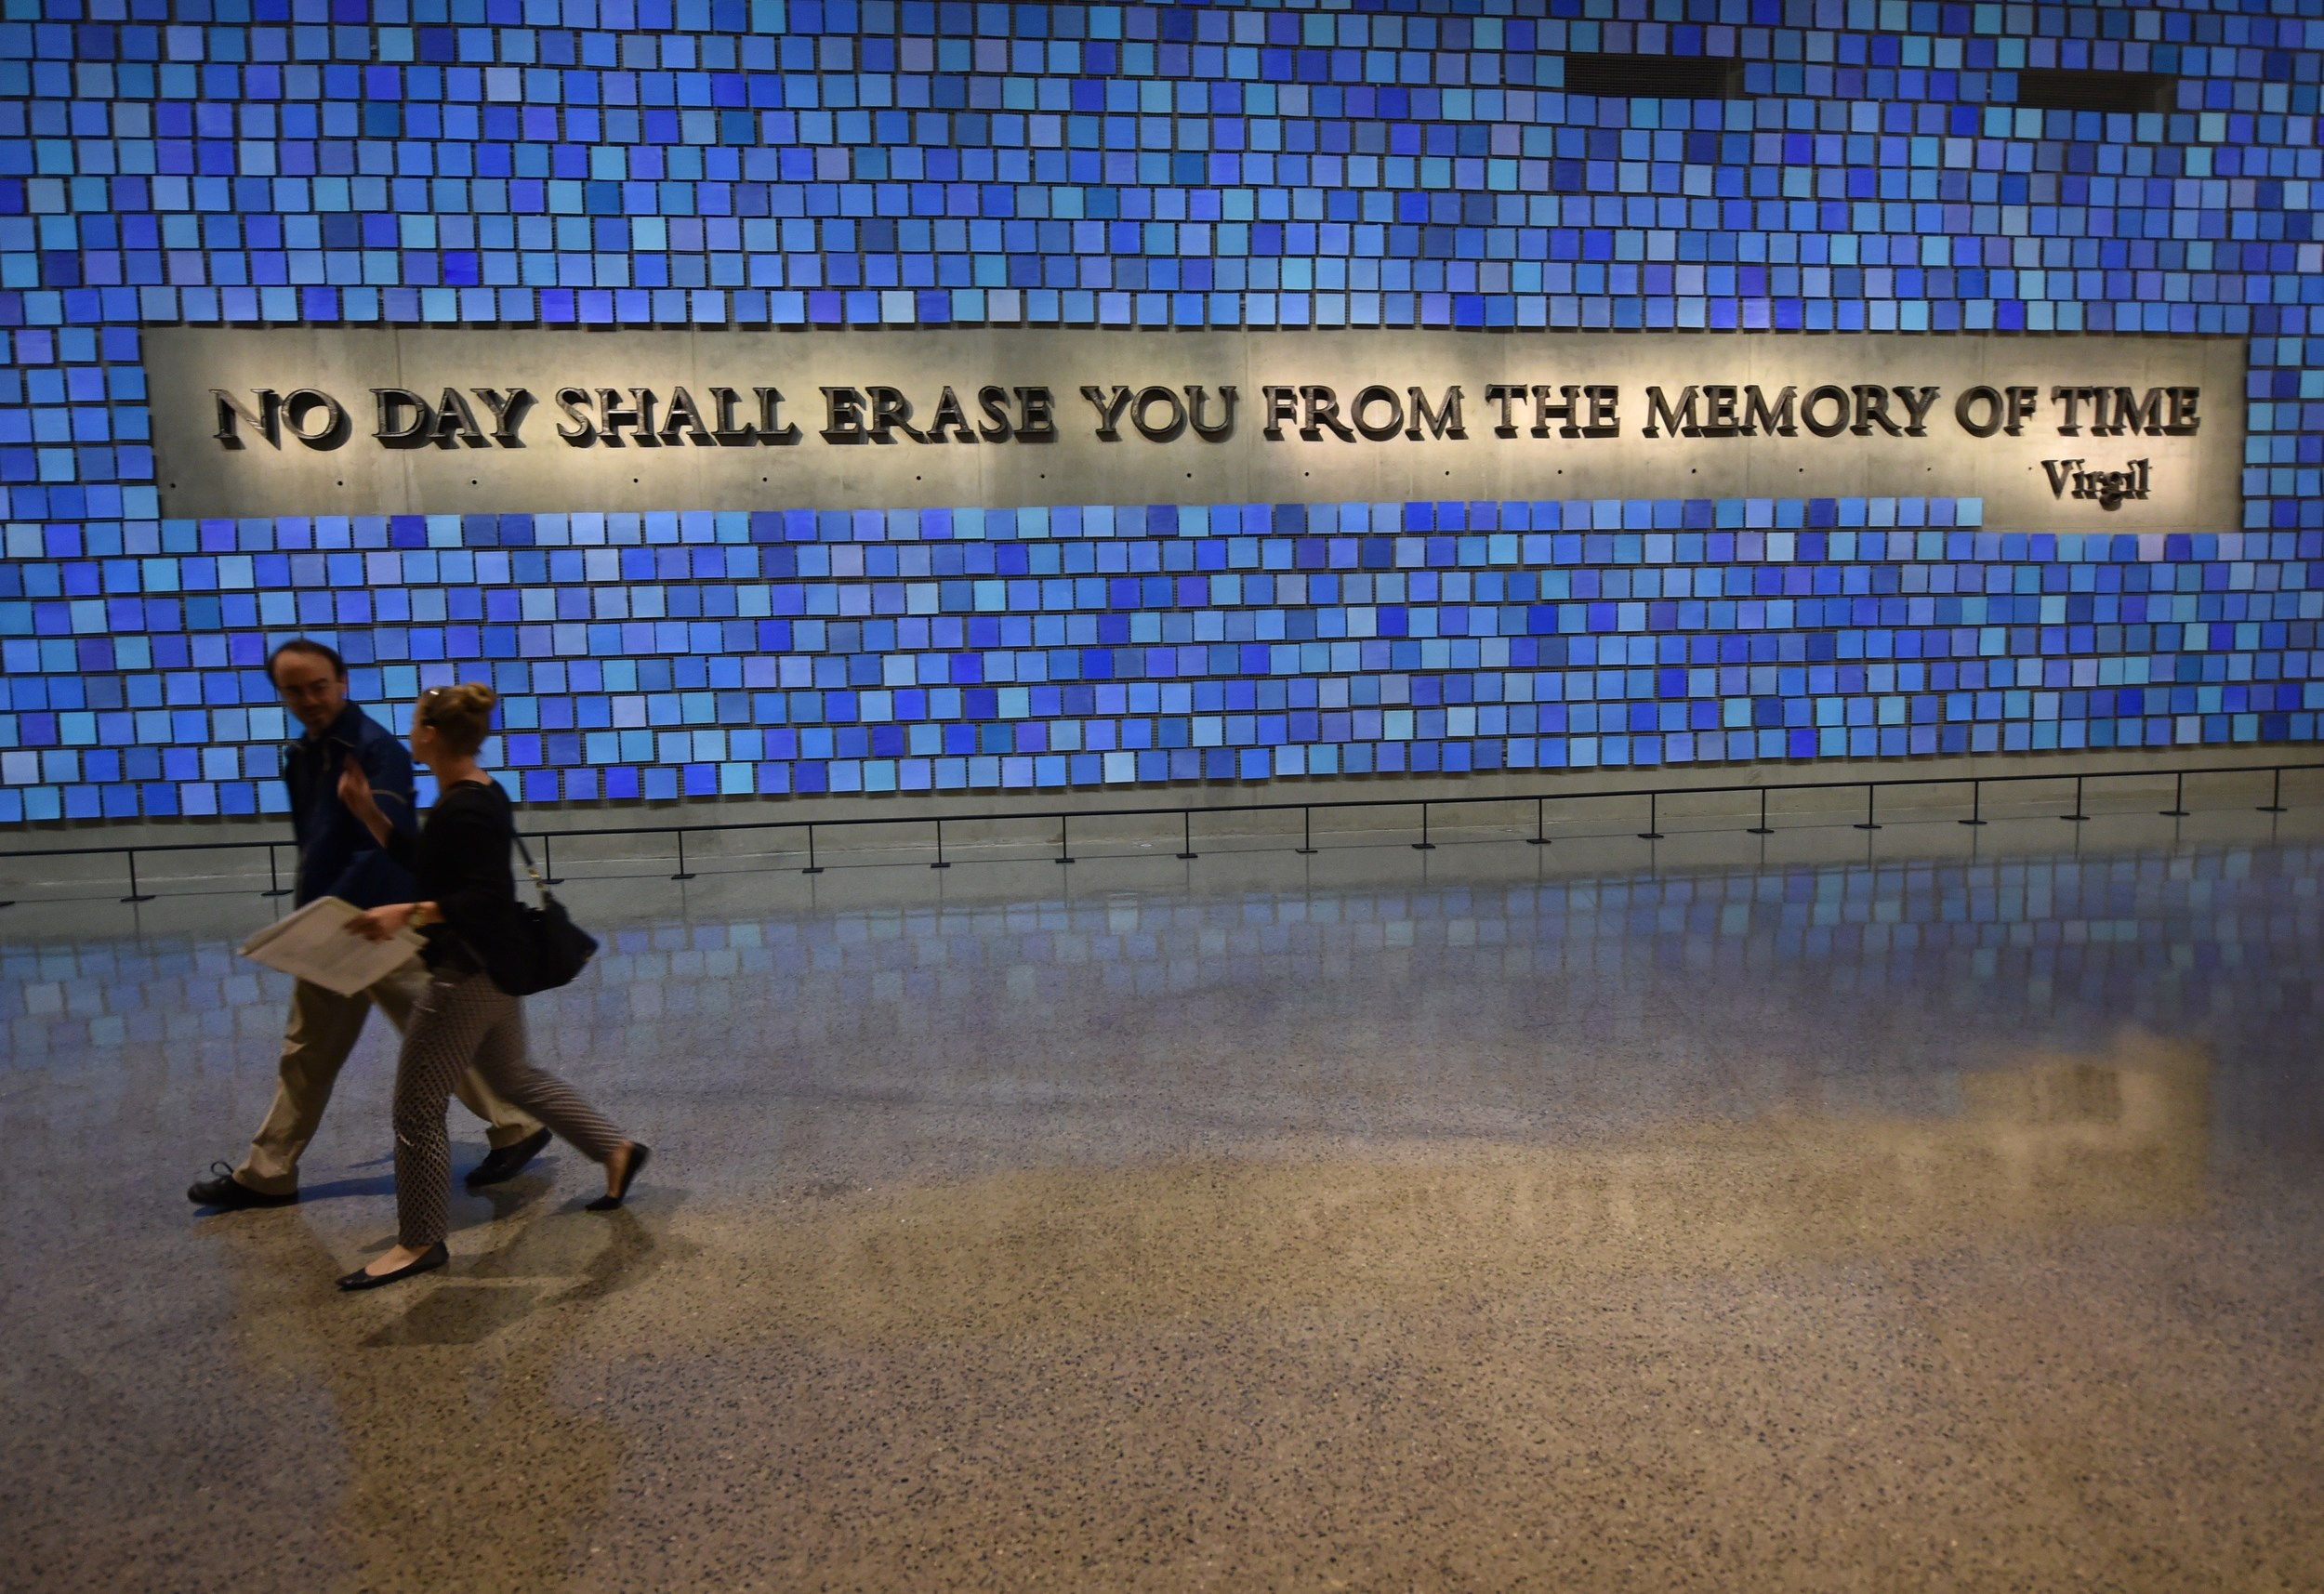 911 Quotes  September 11 Remembrance sayings  Statue of